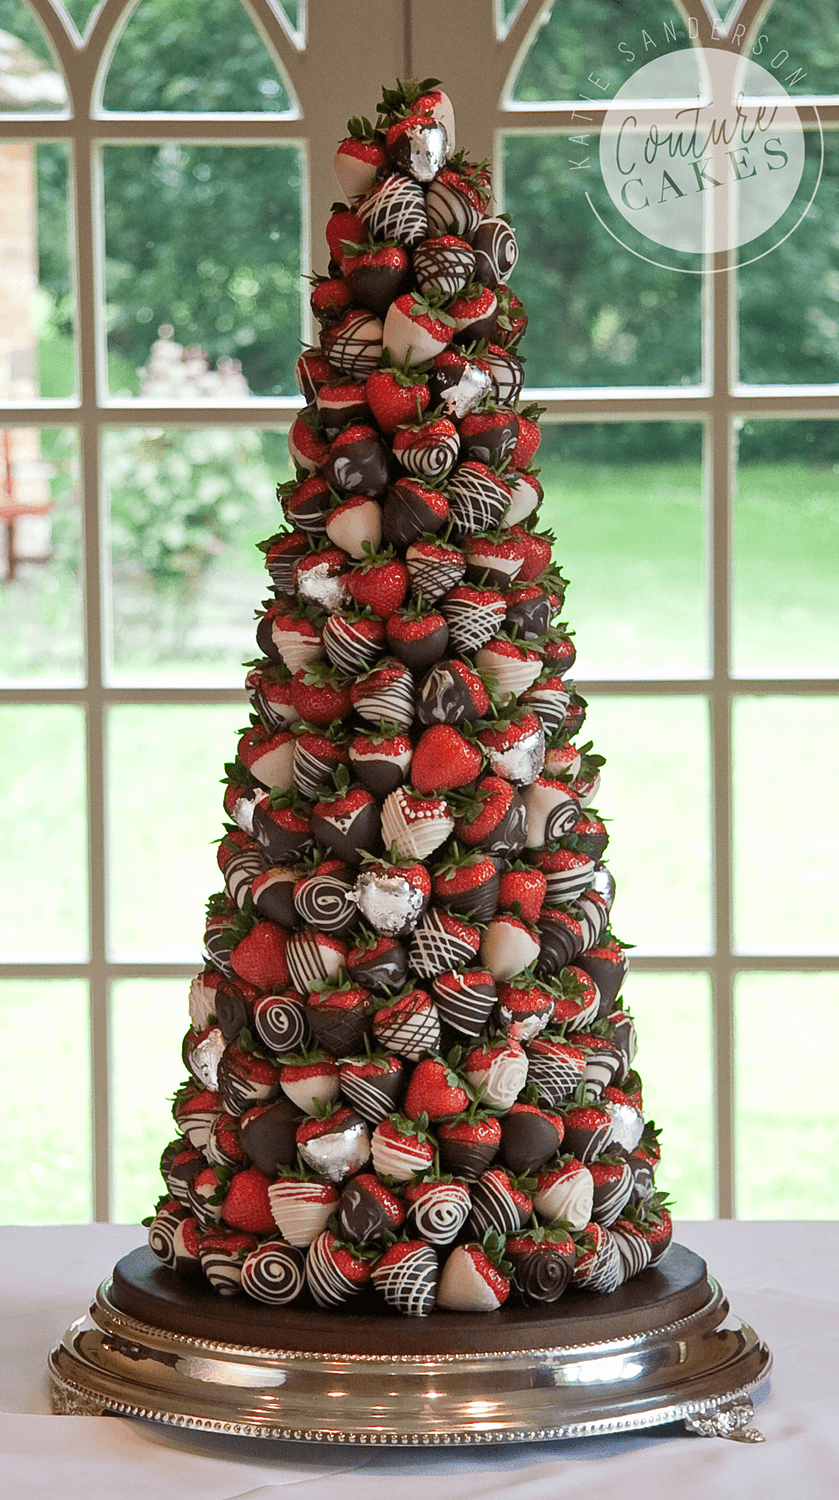 Provides 200 dipped strawberries, Price £395 (for 200 strawberries)